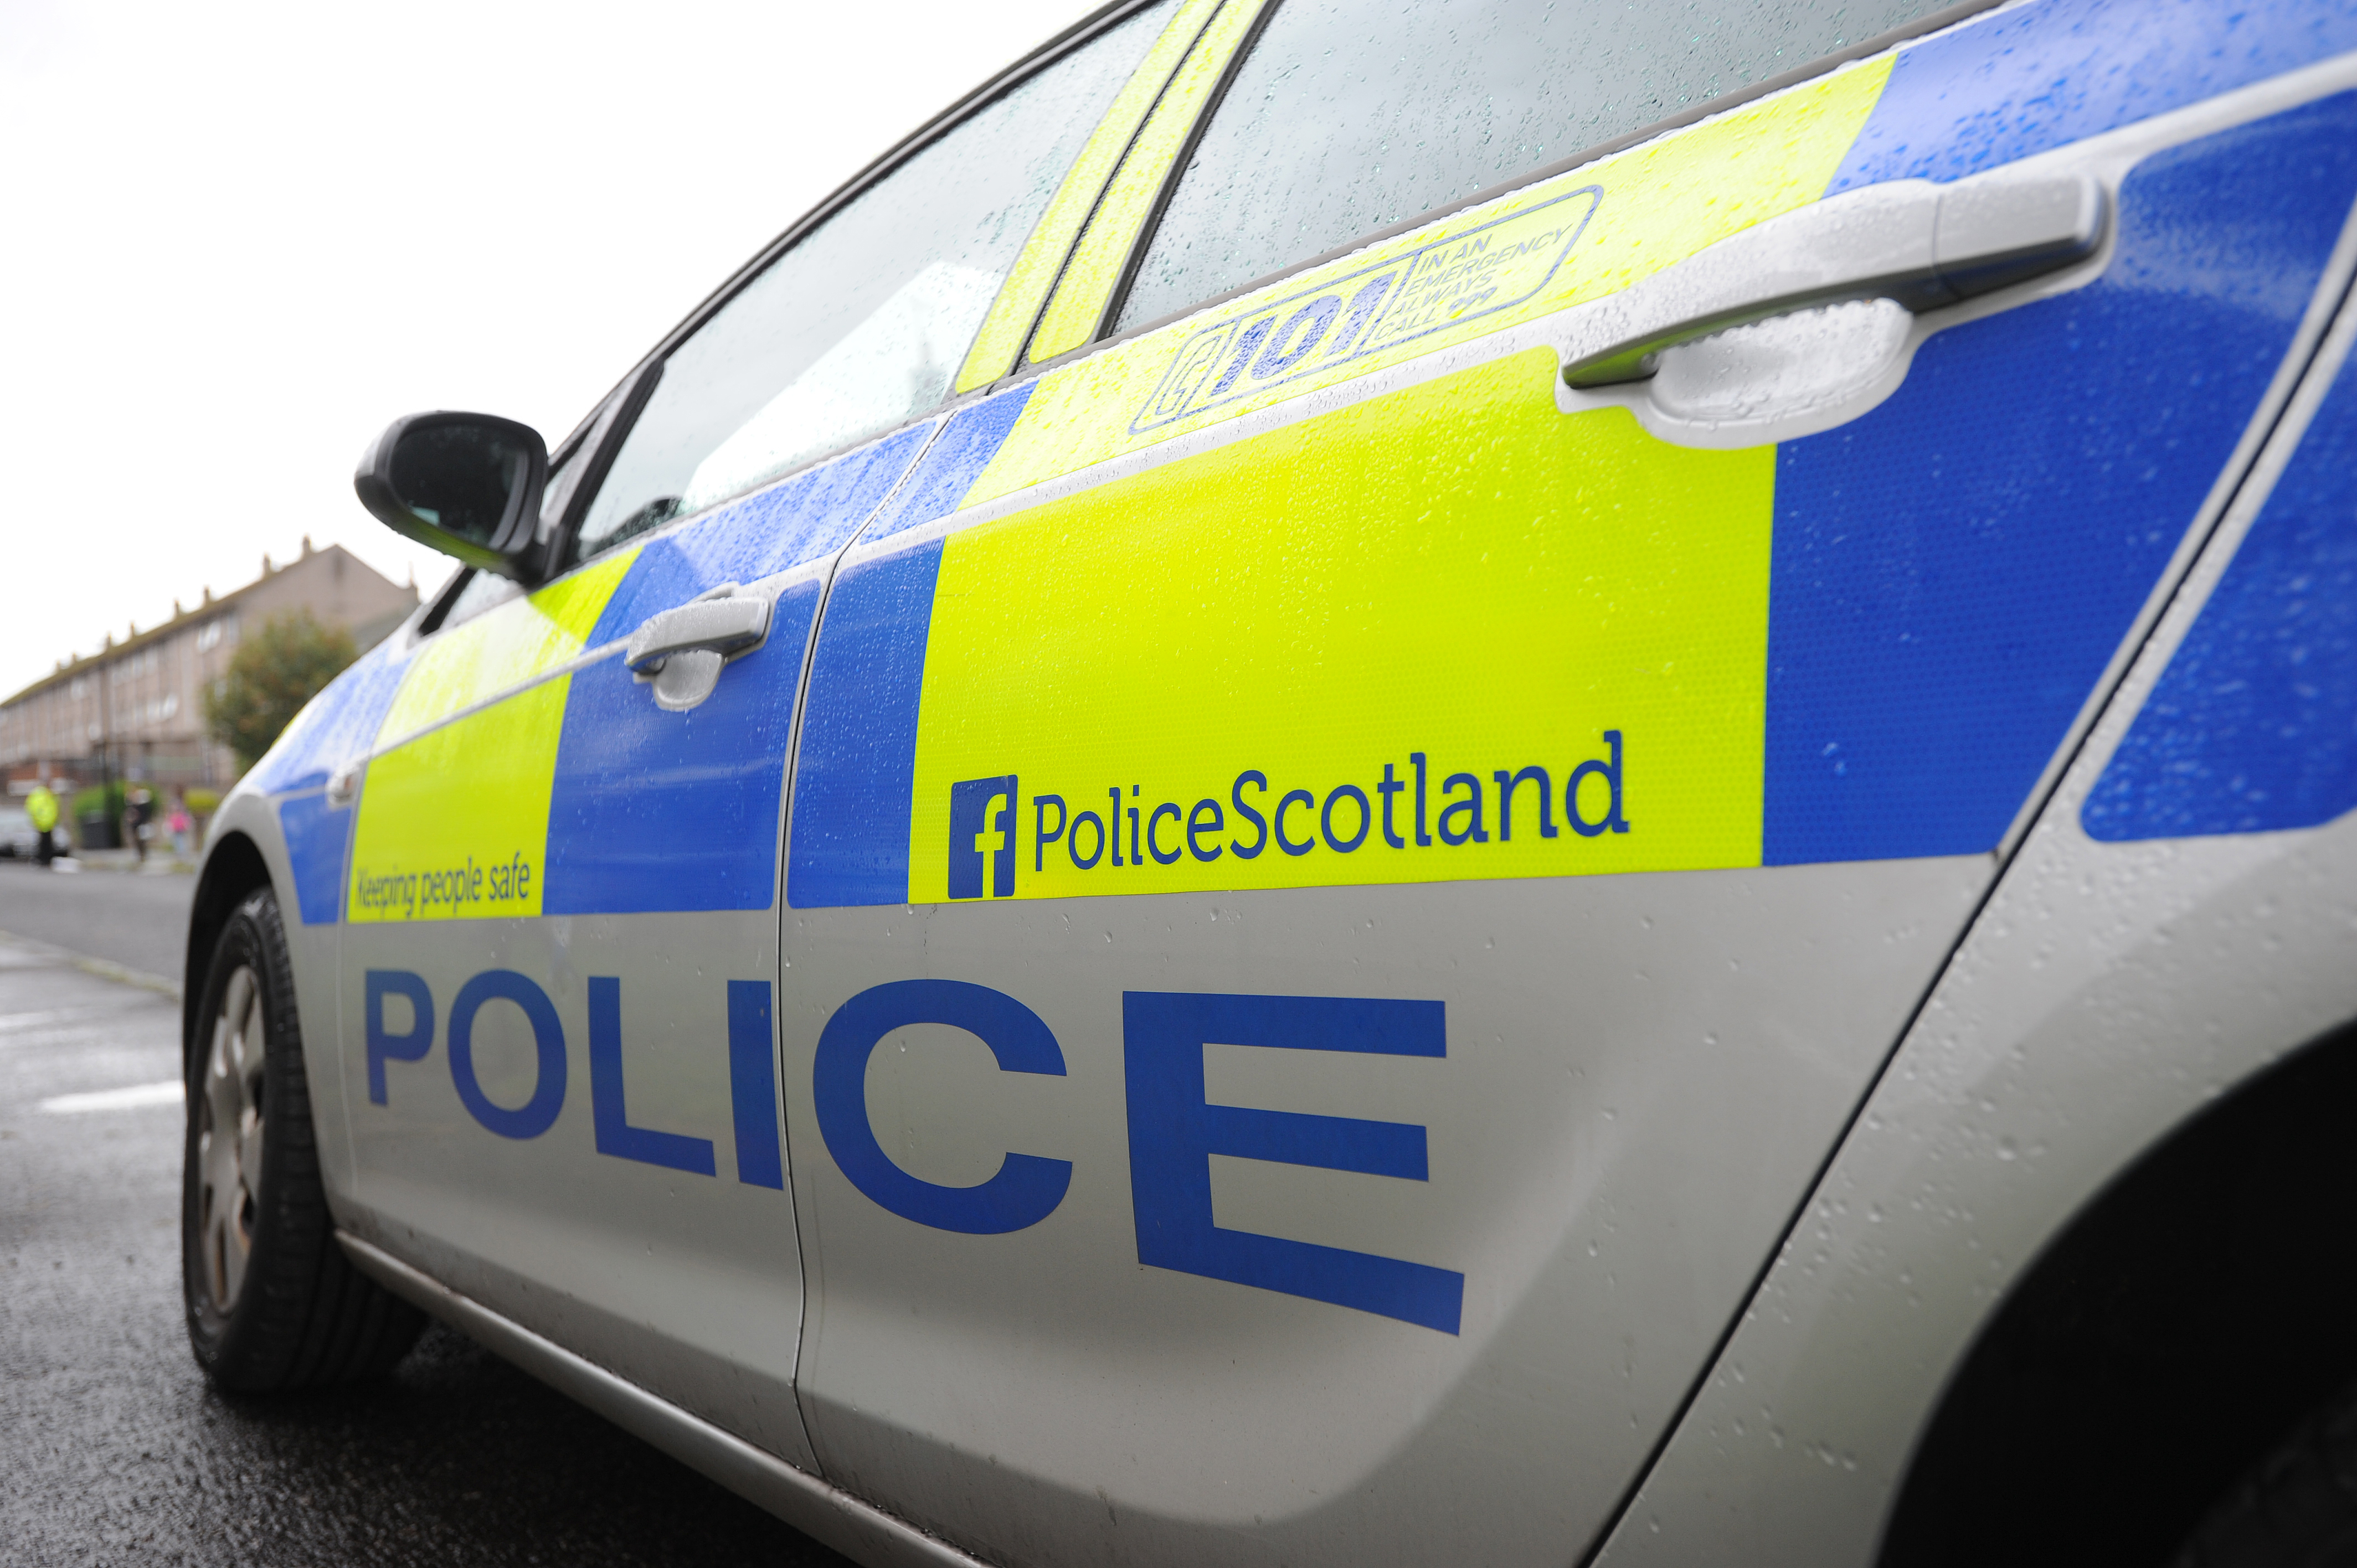 A man has been charged with careless driving following the crash.